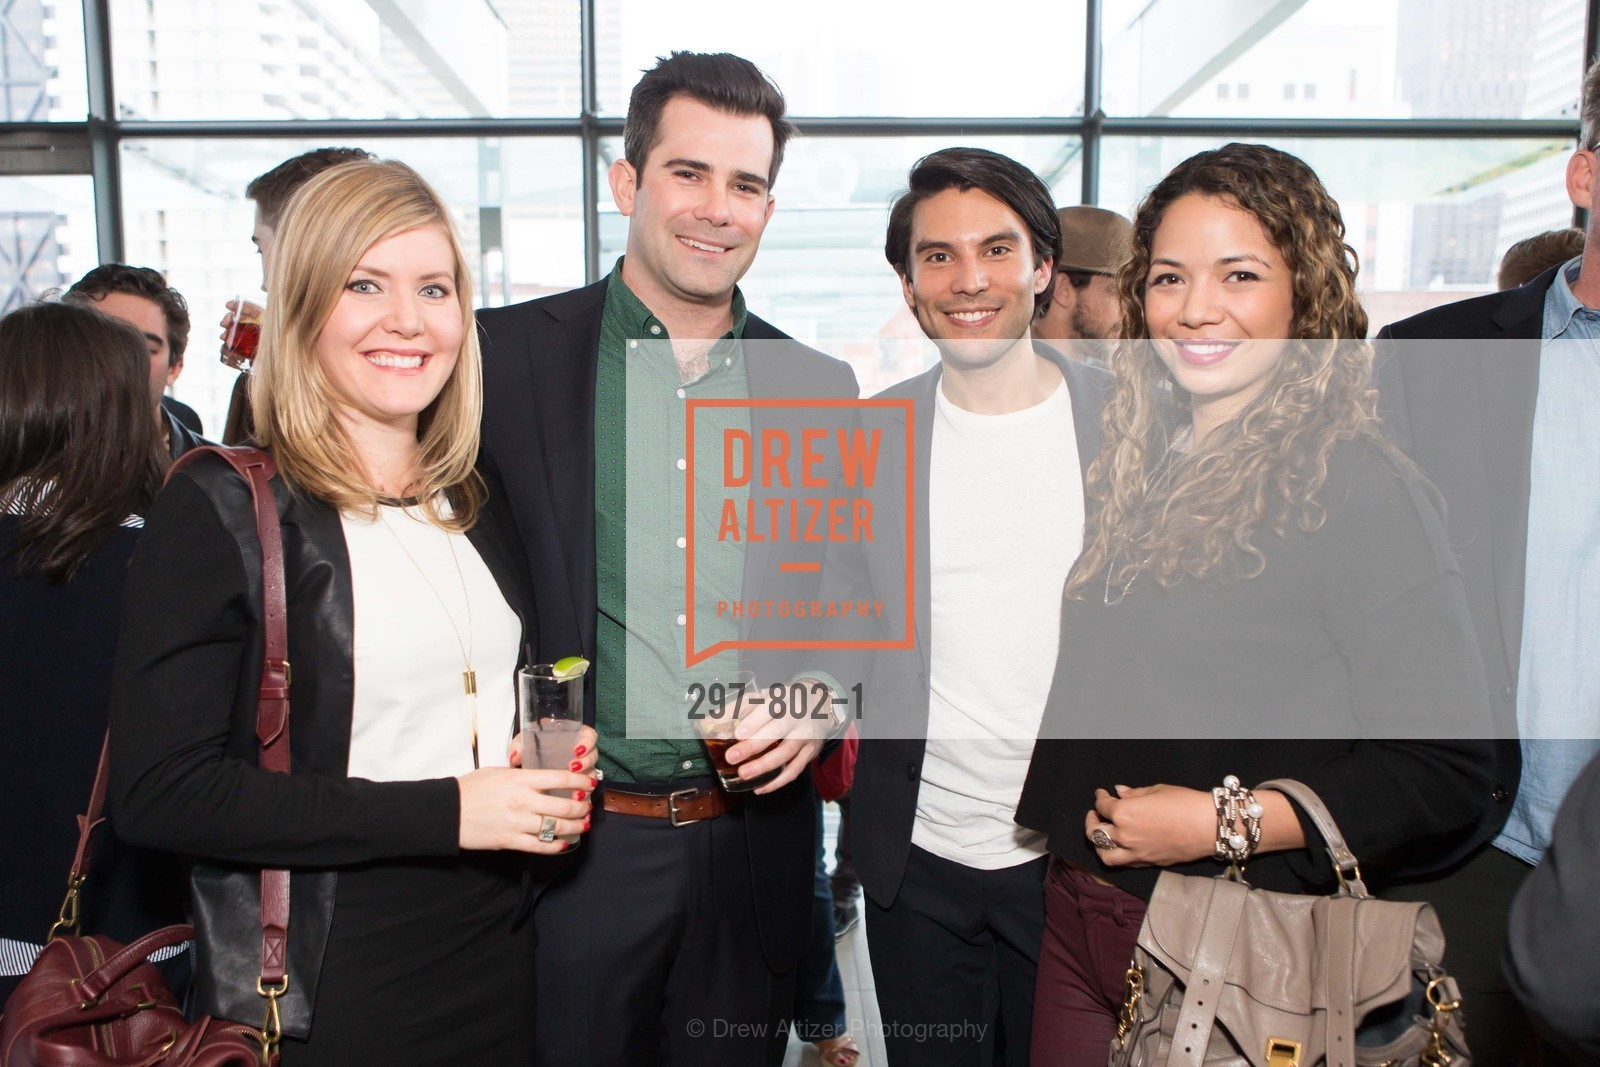 Anne Kelly, Tony Gunterman, Carlos Rivera-Anaya, Angela Sobrepena, MR PORTER Celebrate The San Francisco Issue of The Journal, US, April 24th, 2015,Drew Altizer, Drew Altizer Photography, full-service agency, private events, San Francisco photographer, photographer california